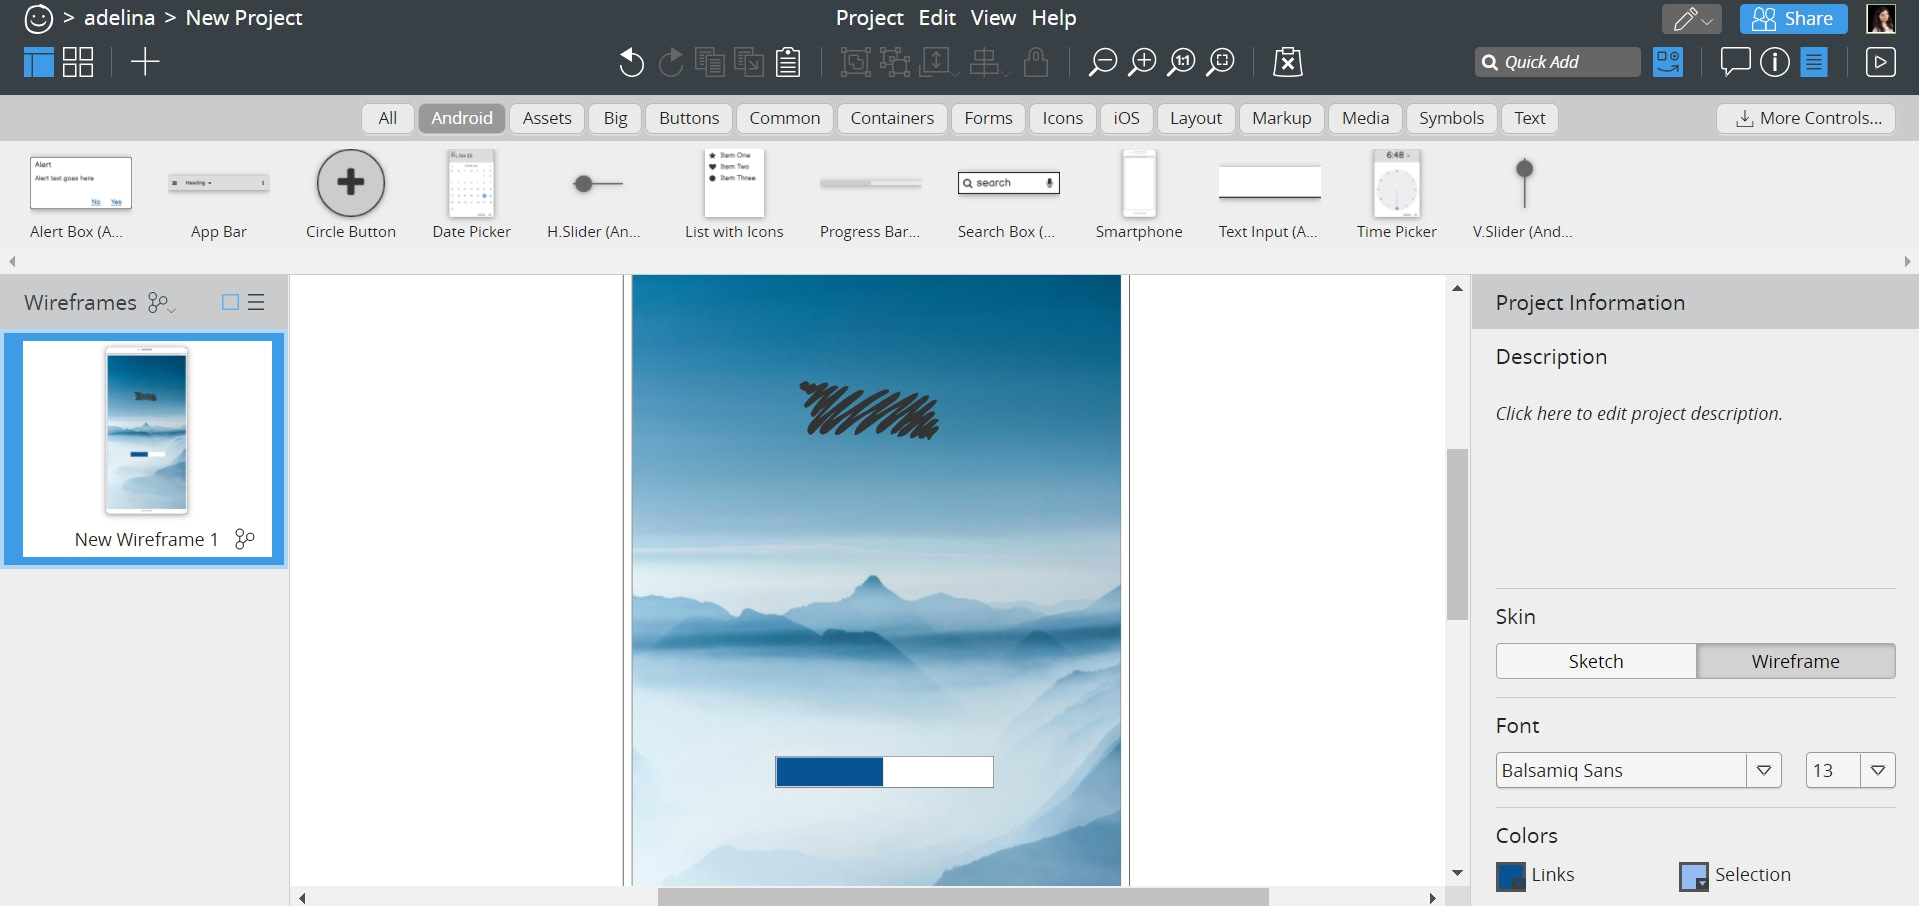 what are splash screens and how to build them with Balsamiq design tool